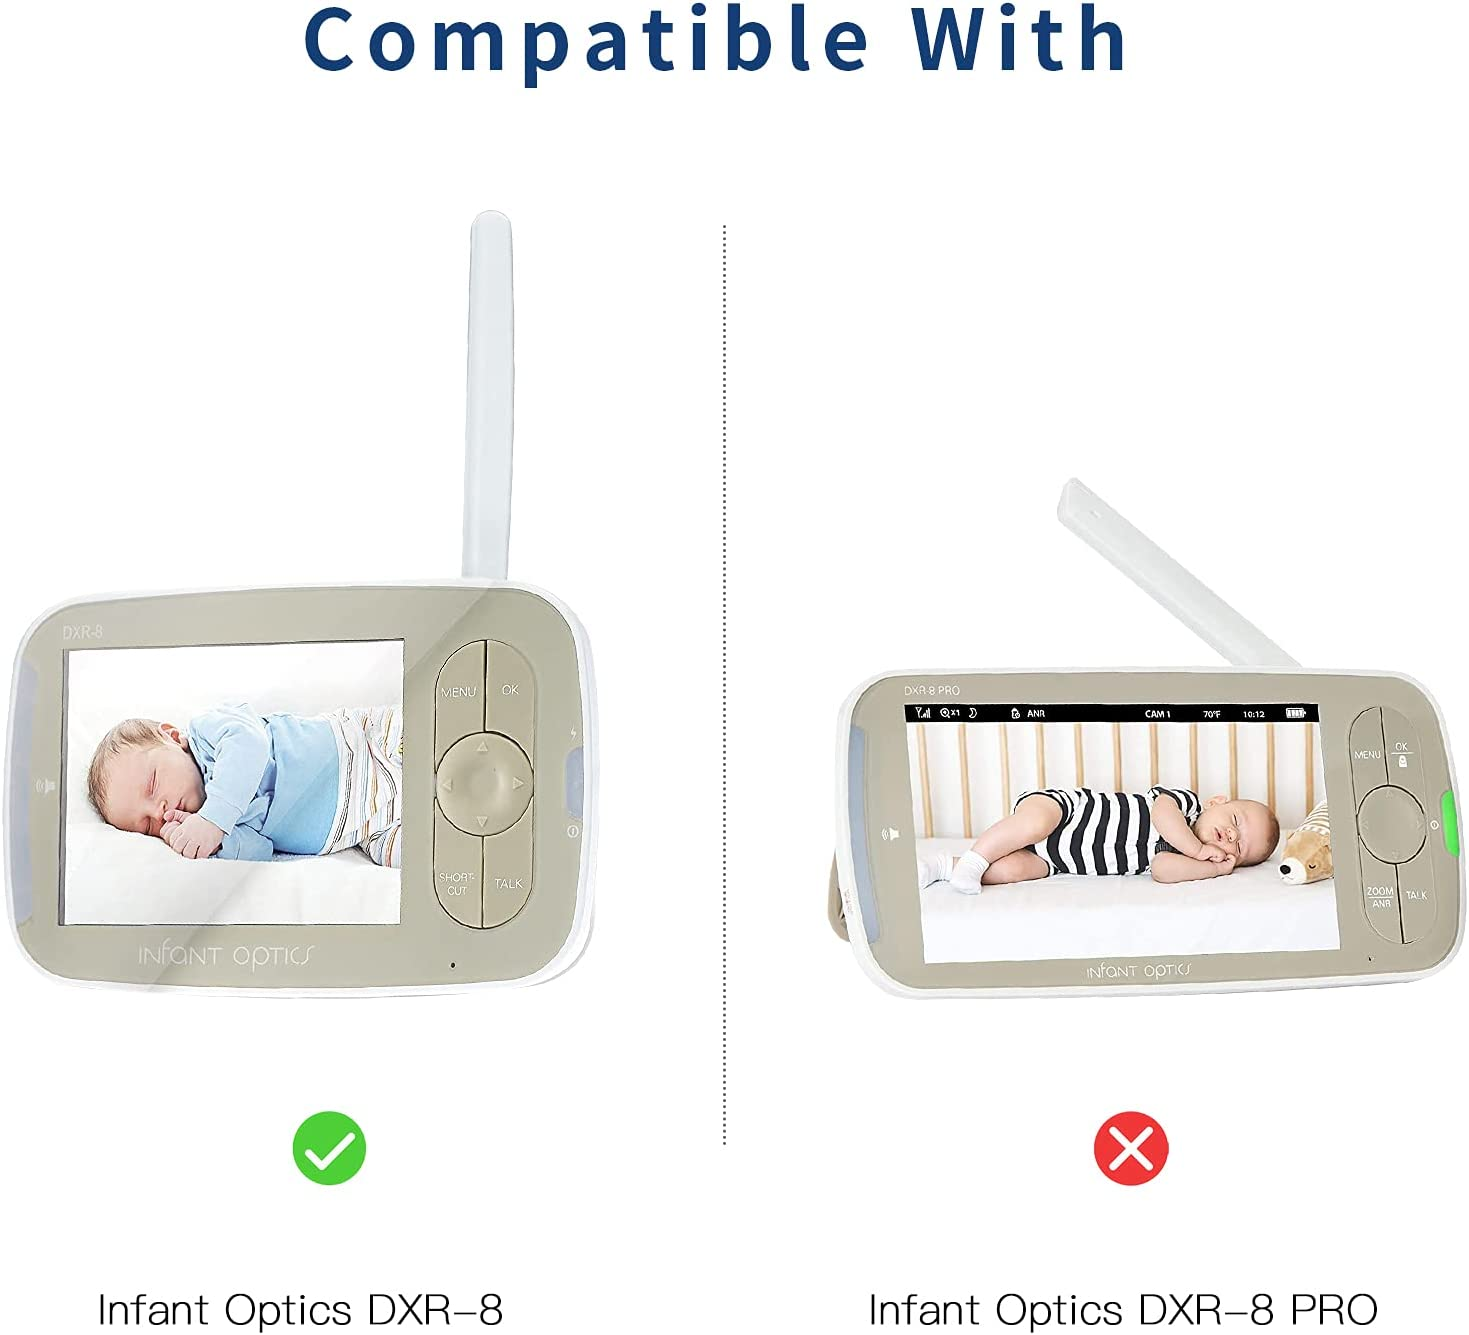 Vomenc Silicone Case for Infant Optics DXR-8 Video Baby Monitor 3.5